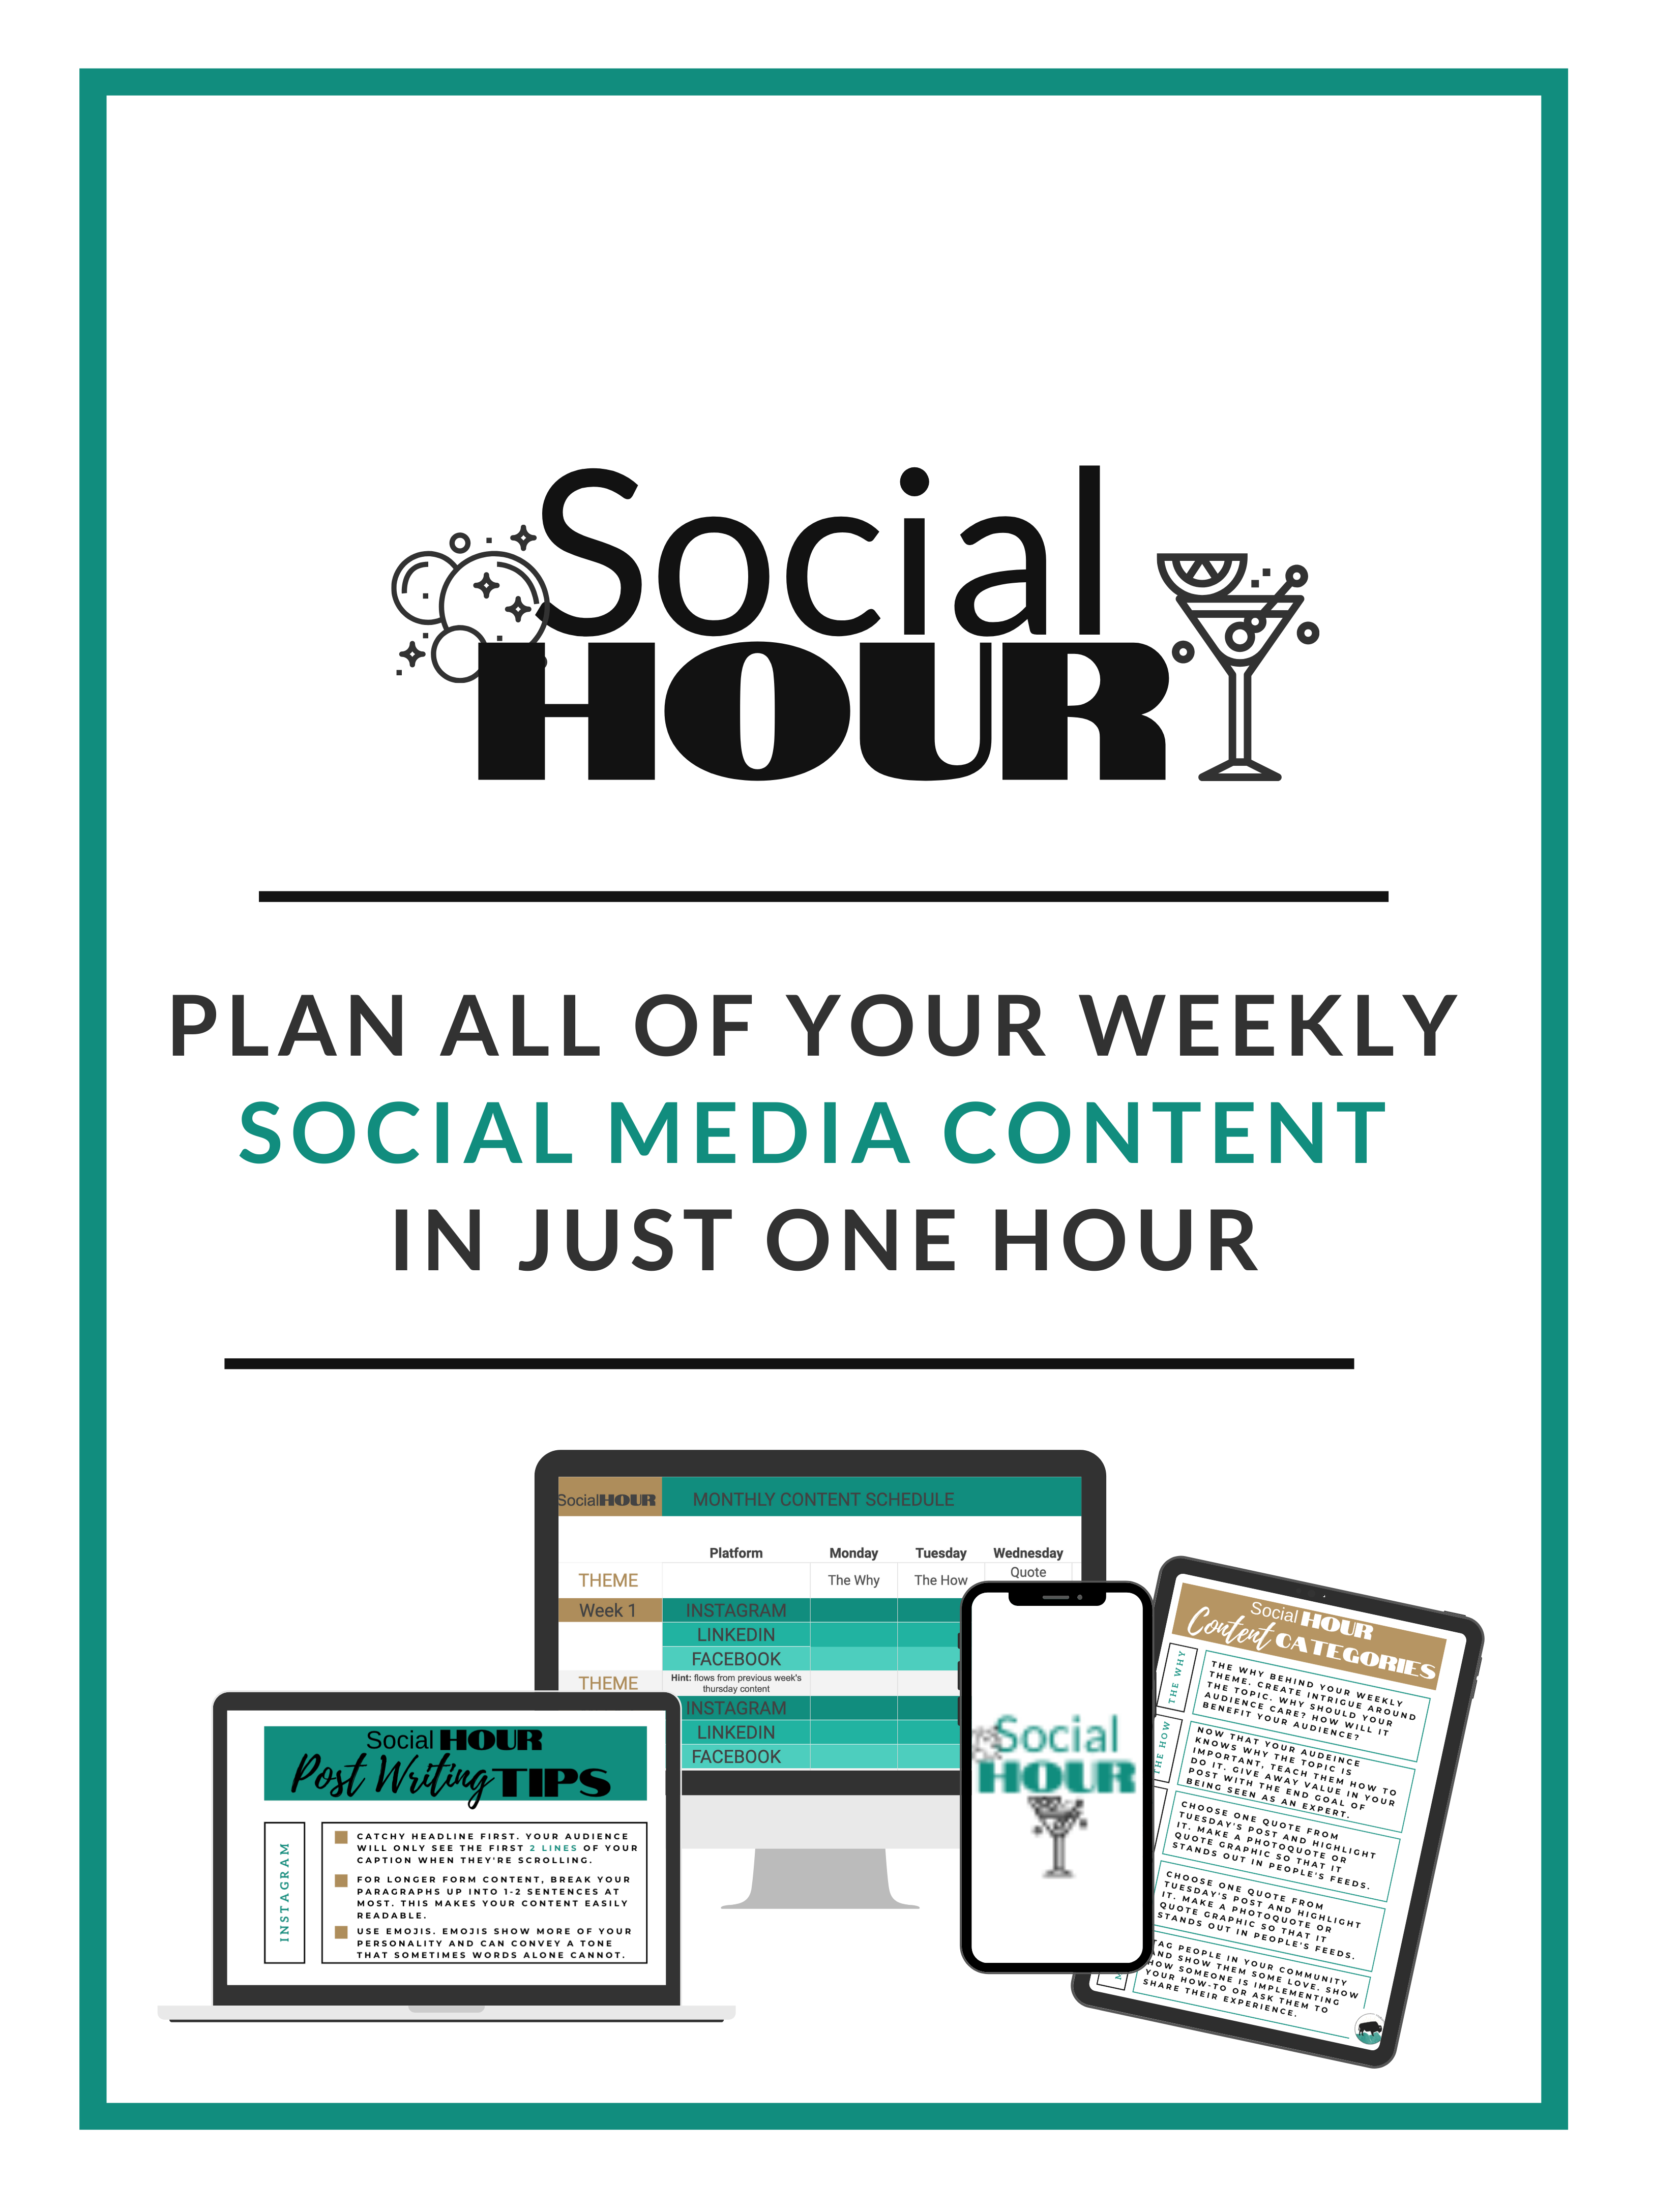 Plan your social media content in one hour per week